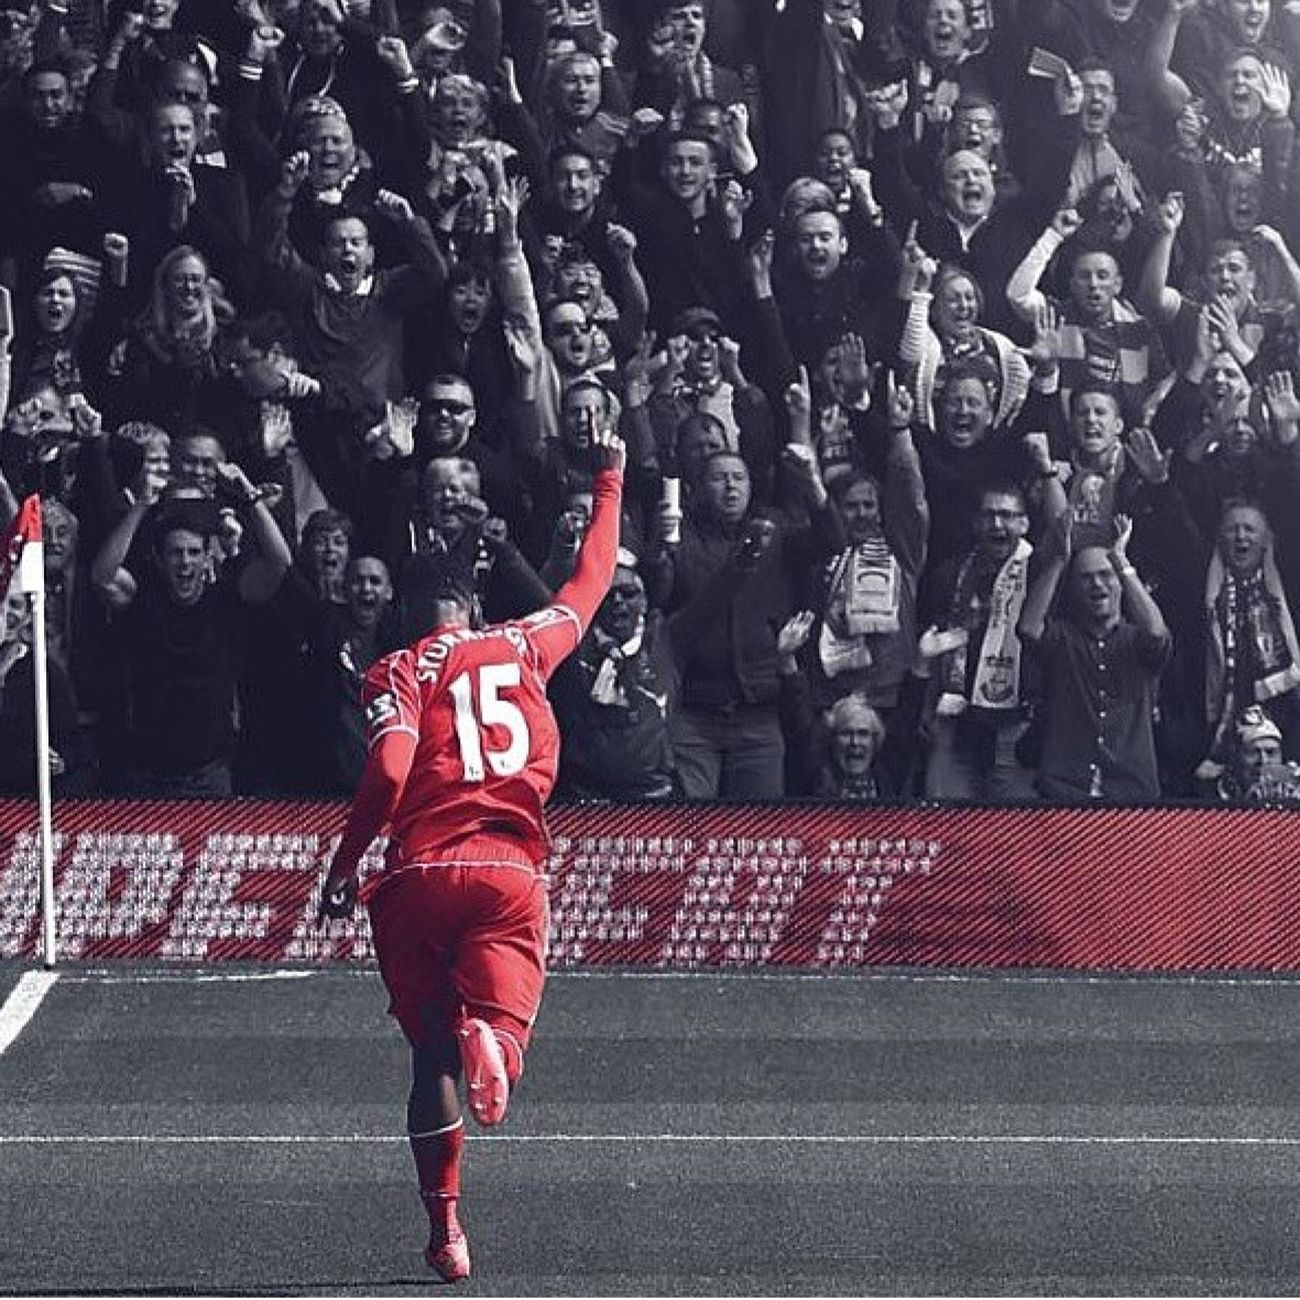 Daniel Sturridge Idol Liverpool Anfield Football Barclays